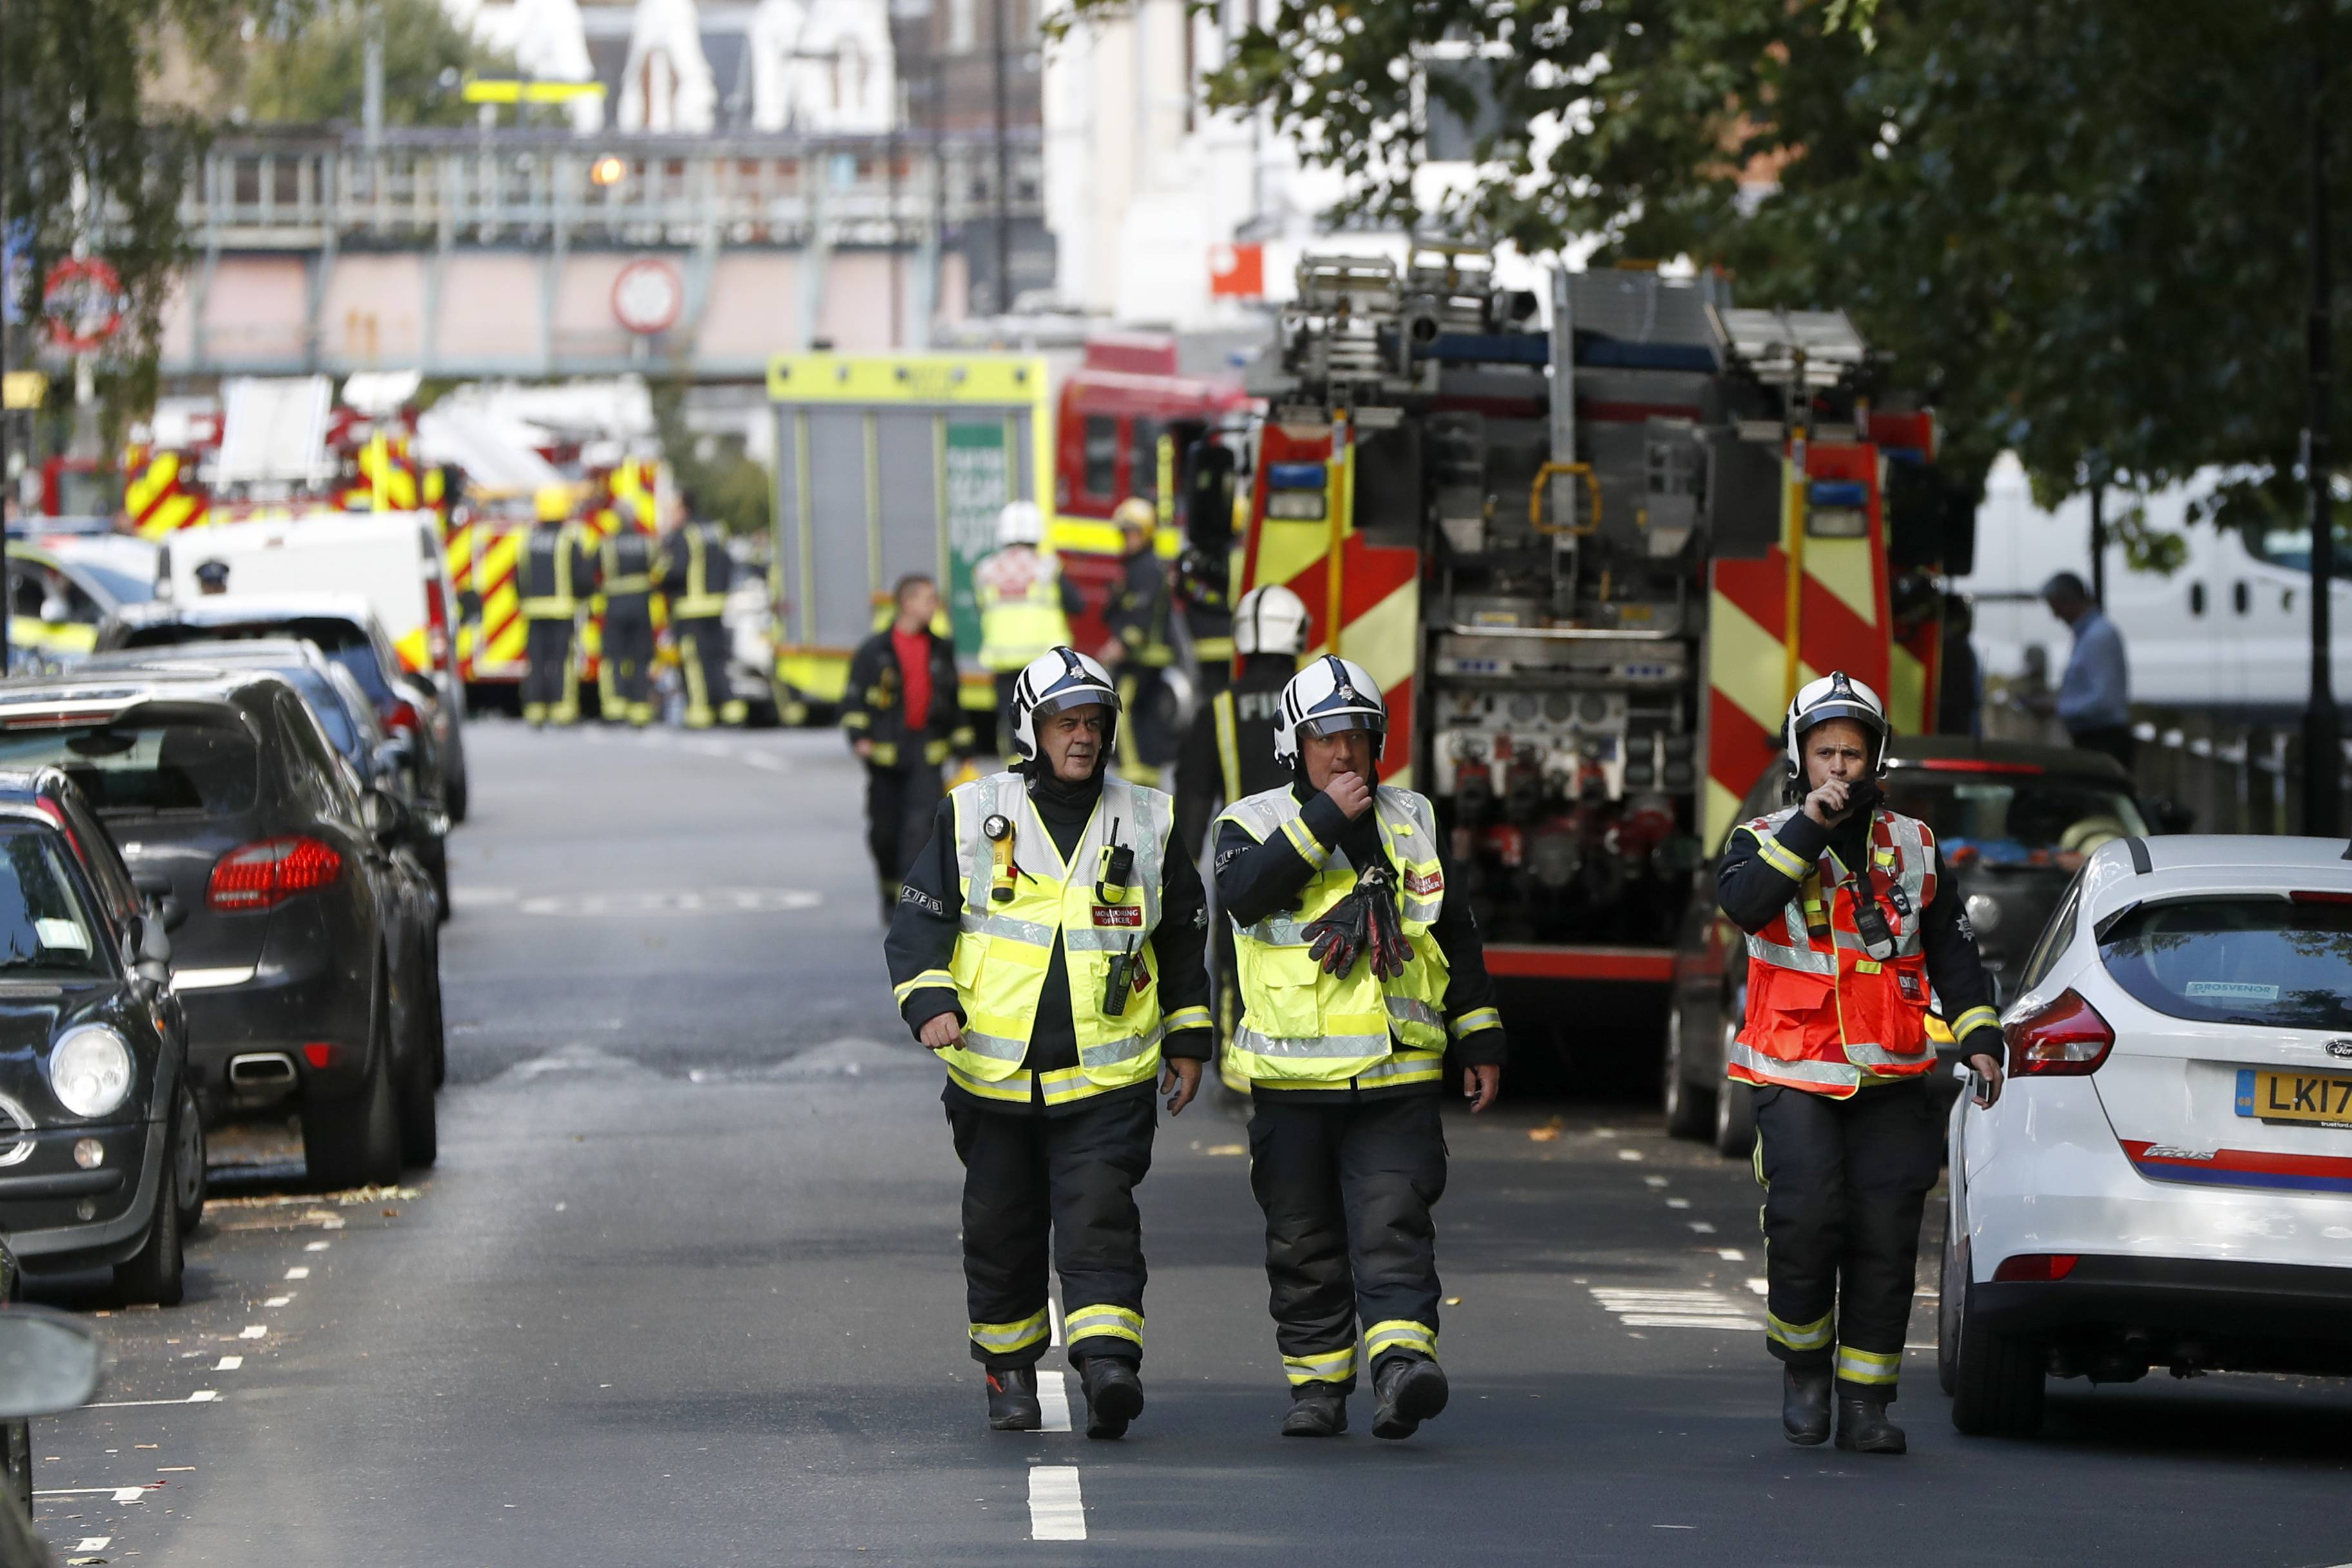 Fire brigade officers walk within a cordon near where an incident happened, that police say they are investigating as a terrorist attack, at Parsons Green subway station in London, Friday, Sept. 15, 2017. A bucket wrapped in an insulated bag caught fire on a packed London subway train Friday, sending commuters stampeding in panic at the height of the morning rush hour.